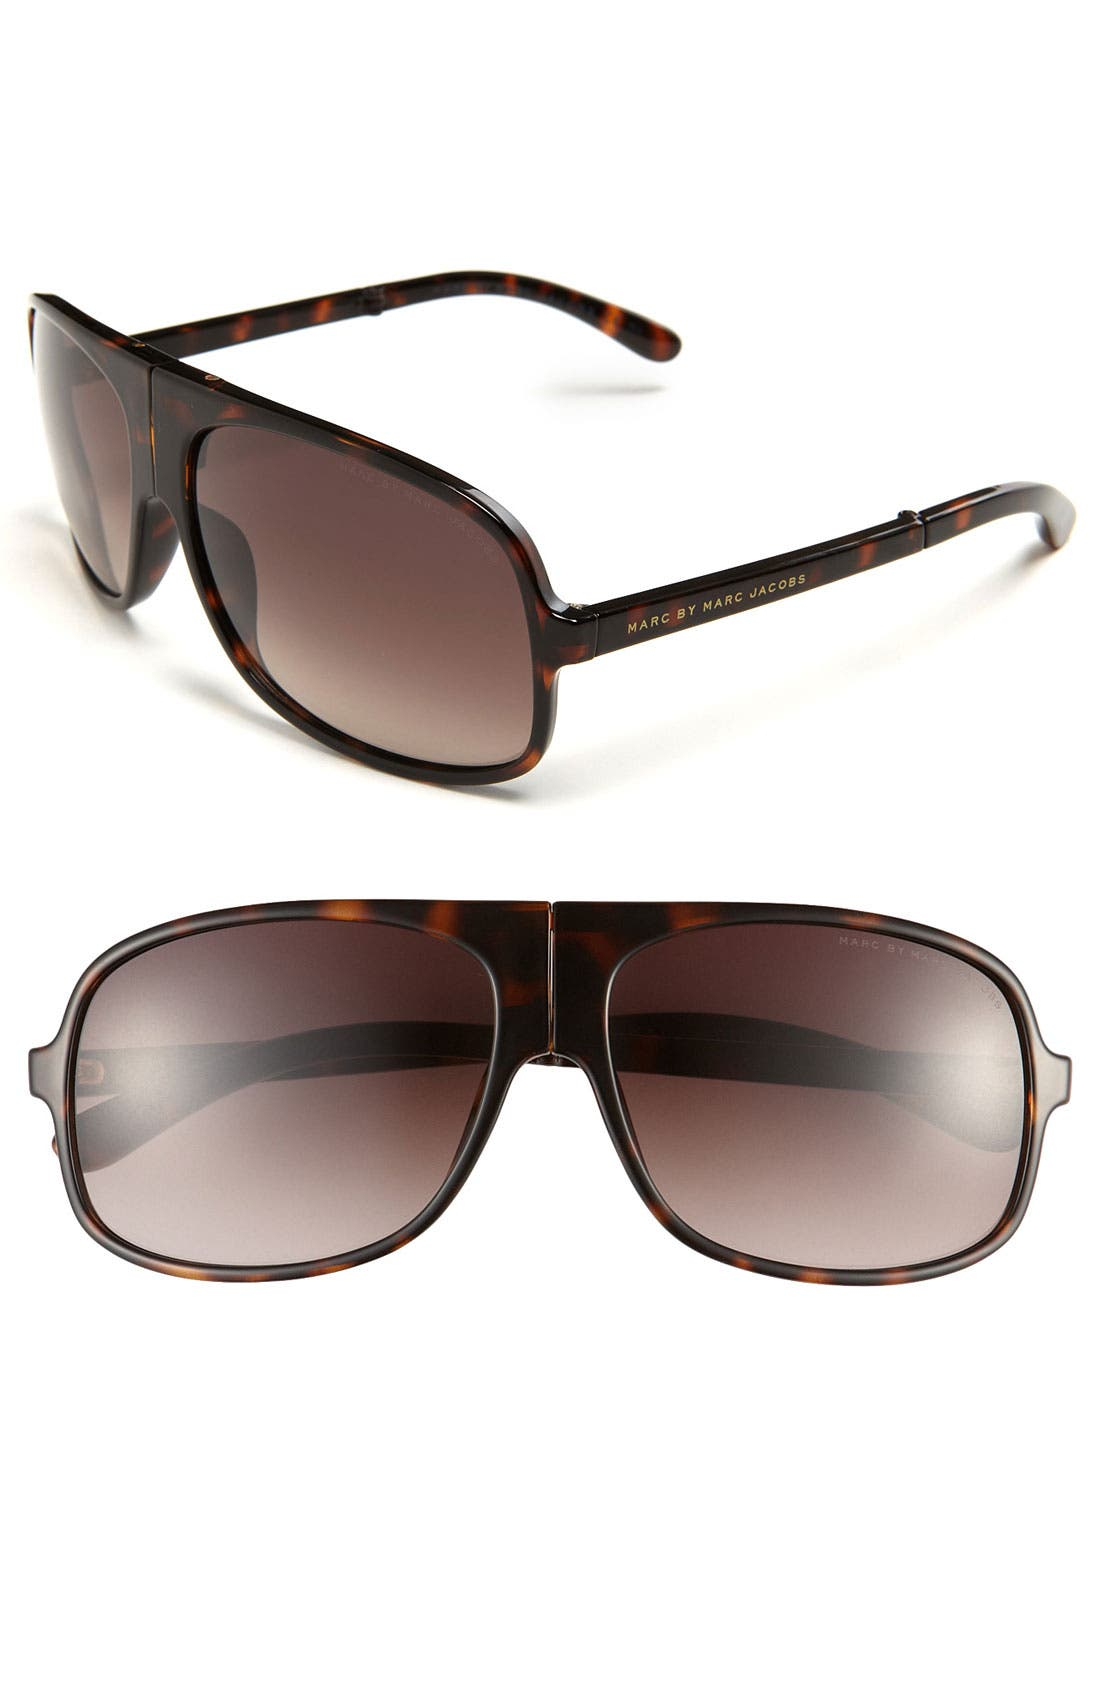 Main Image - MARC BY MARC JACOBS 61mm Folding Aviator Sunglasses